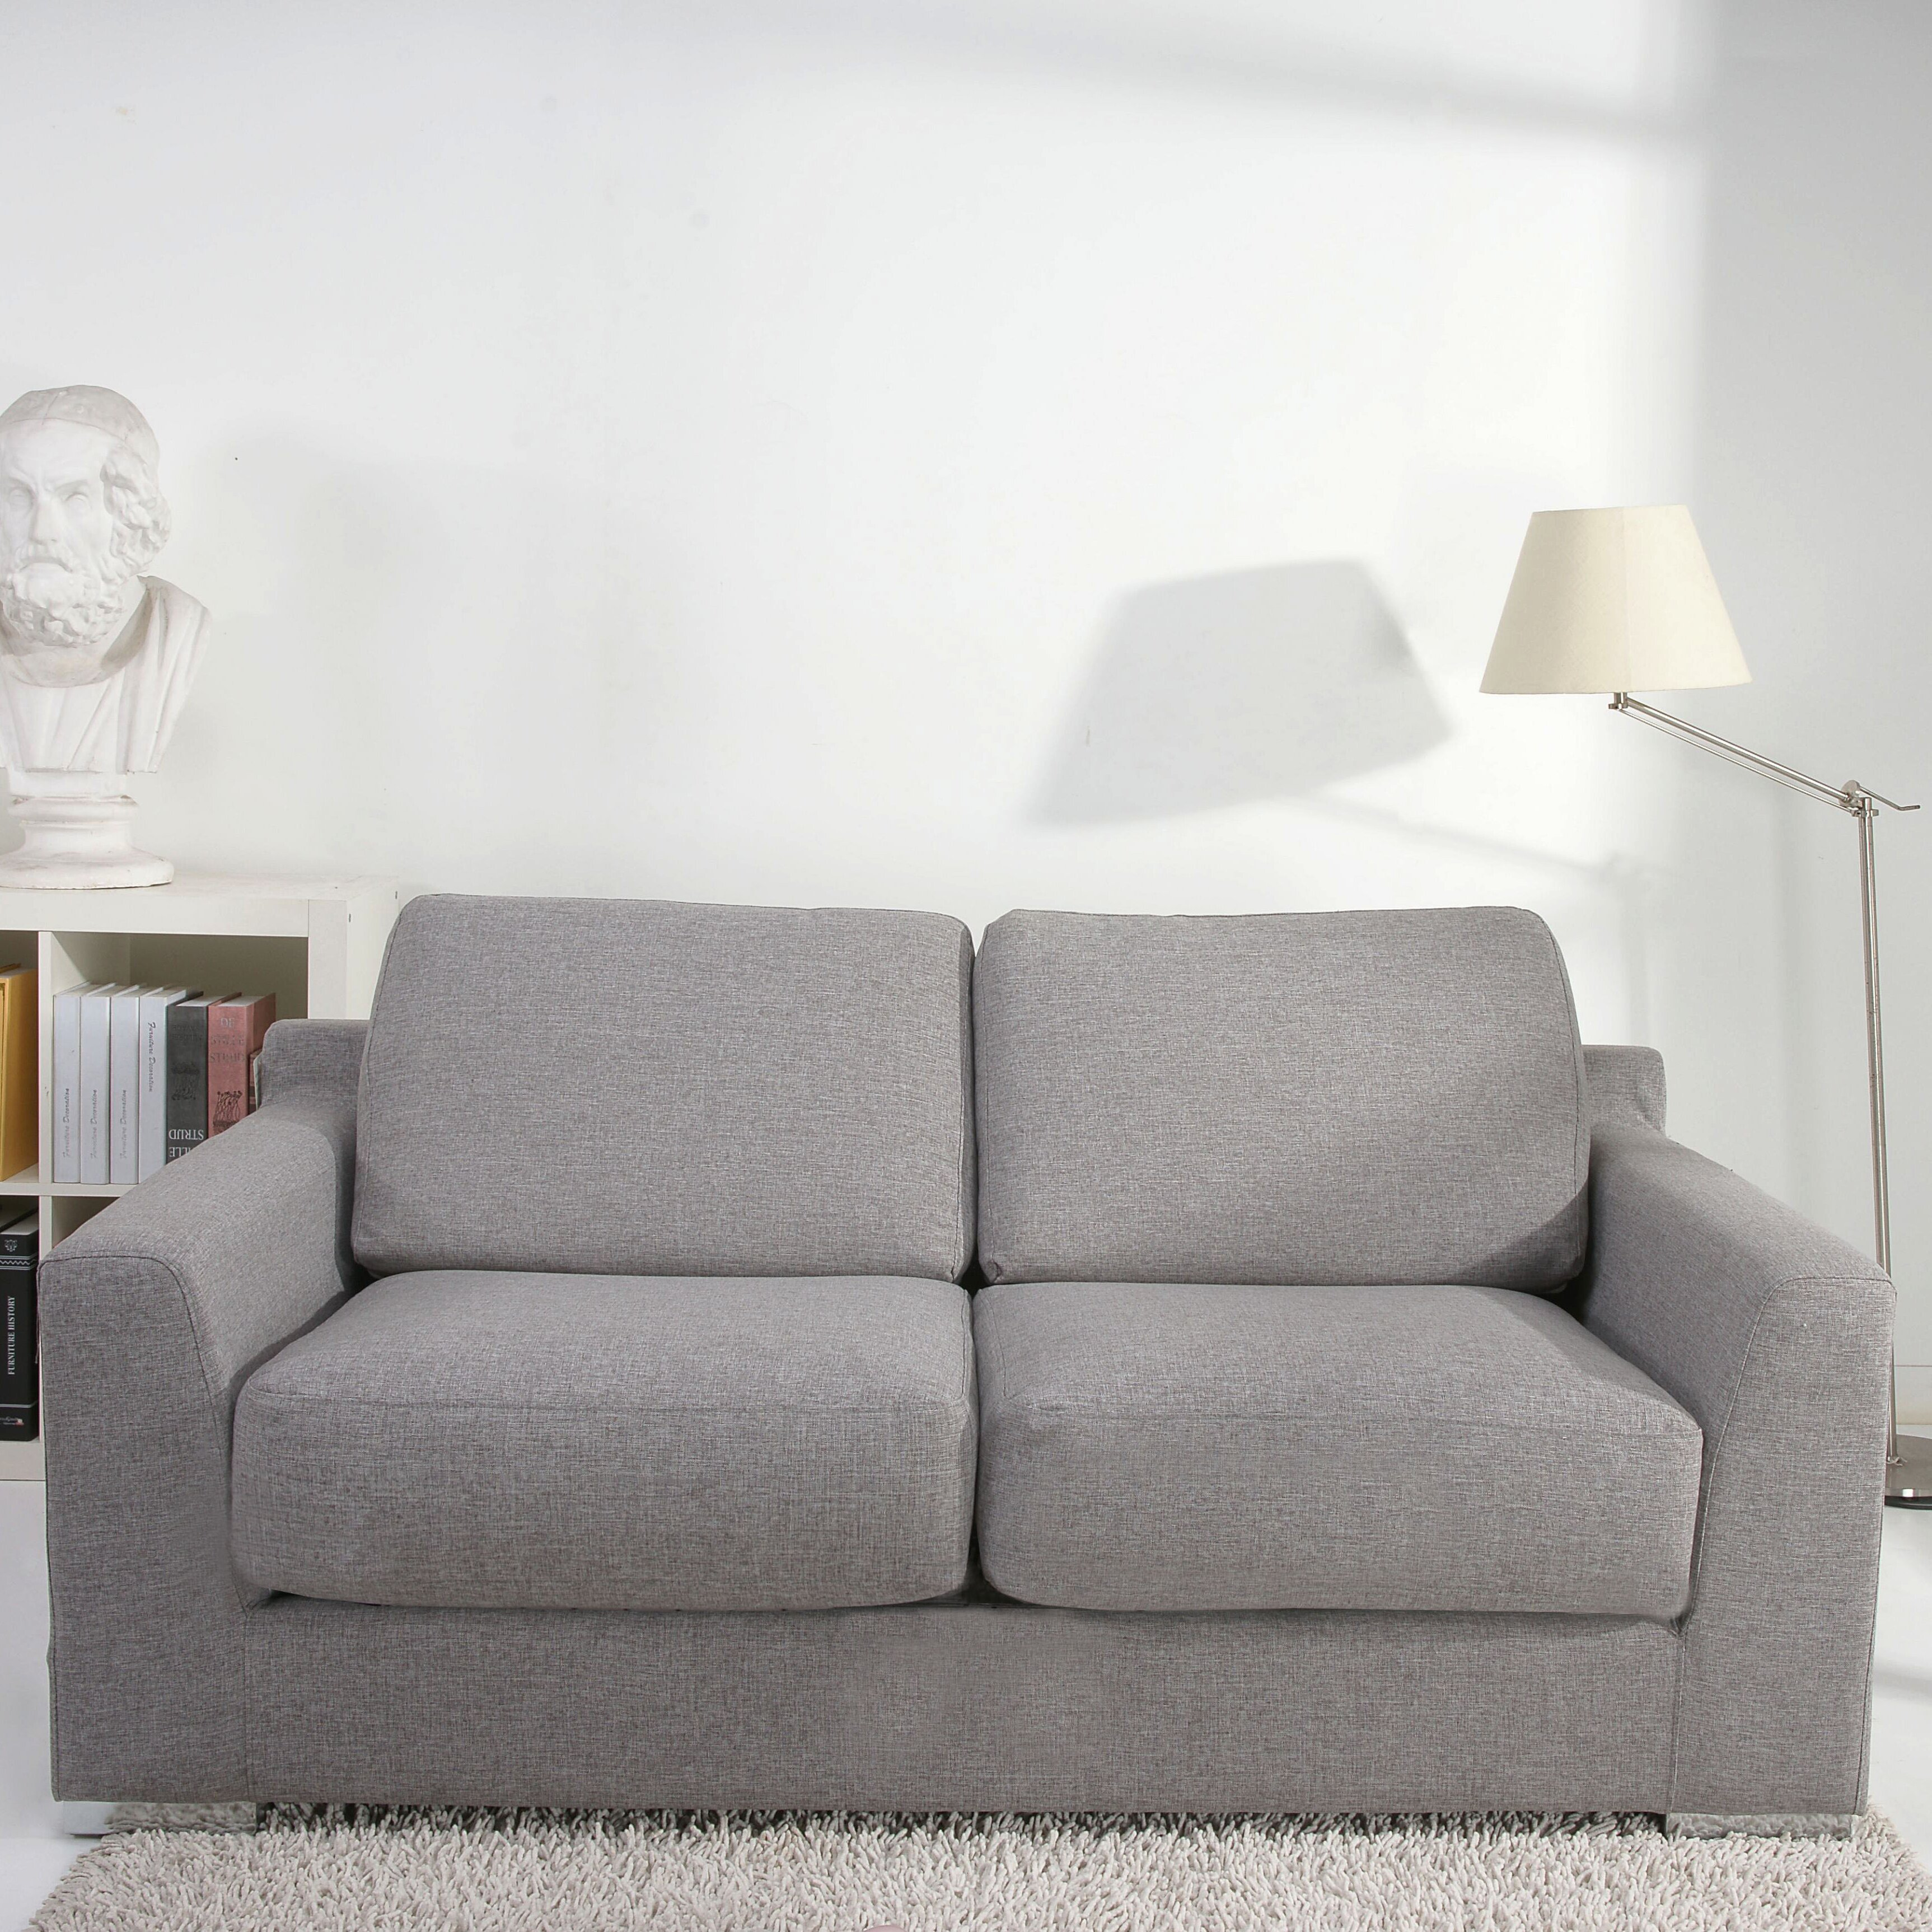 Leader Lifestyle Paris 2 Seater Fold Out Sofa Bed ...